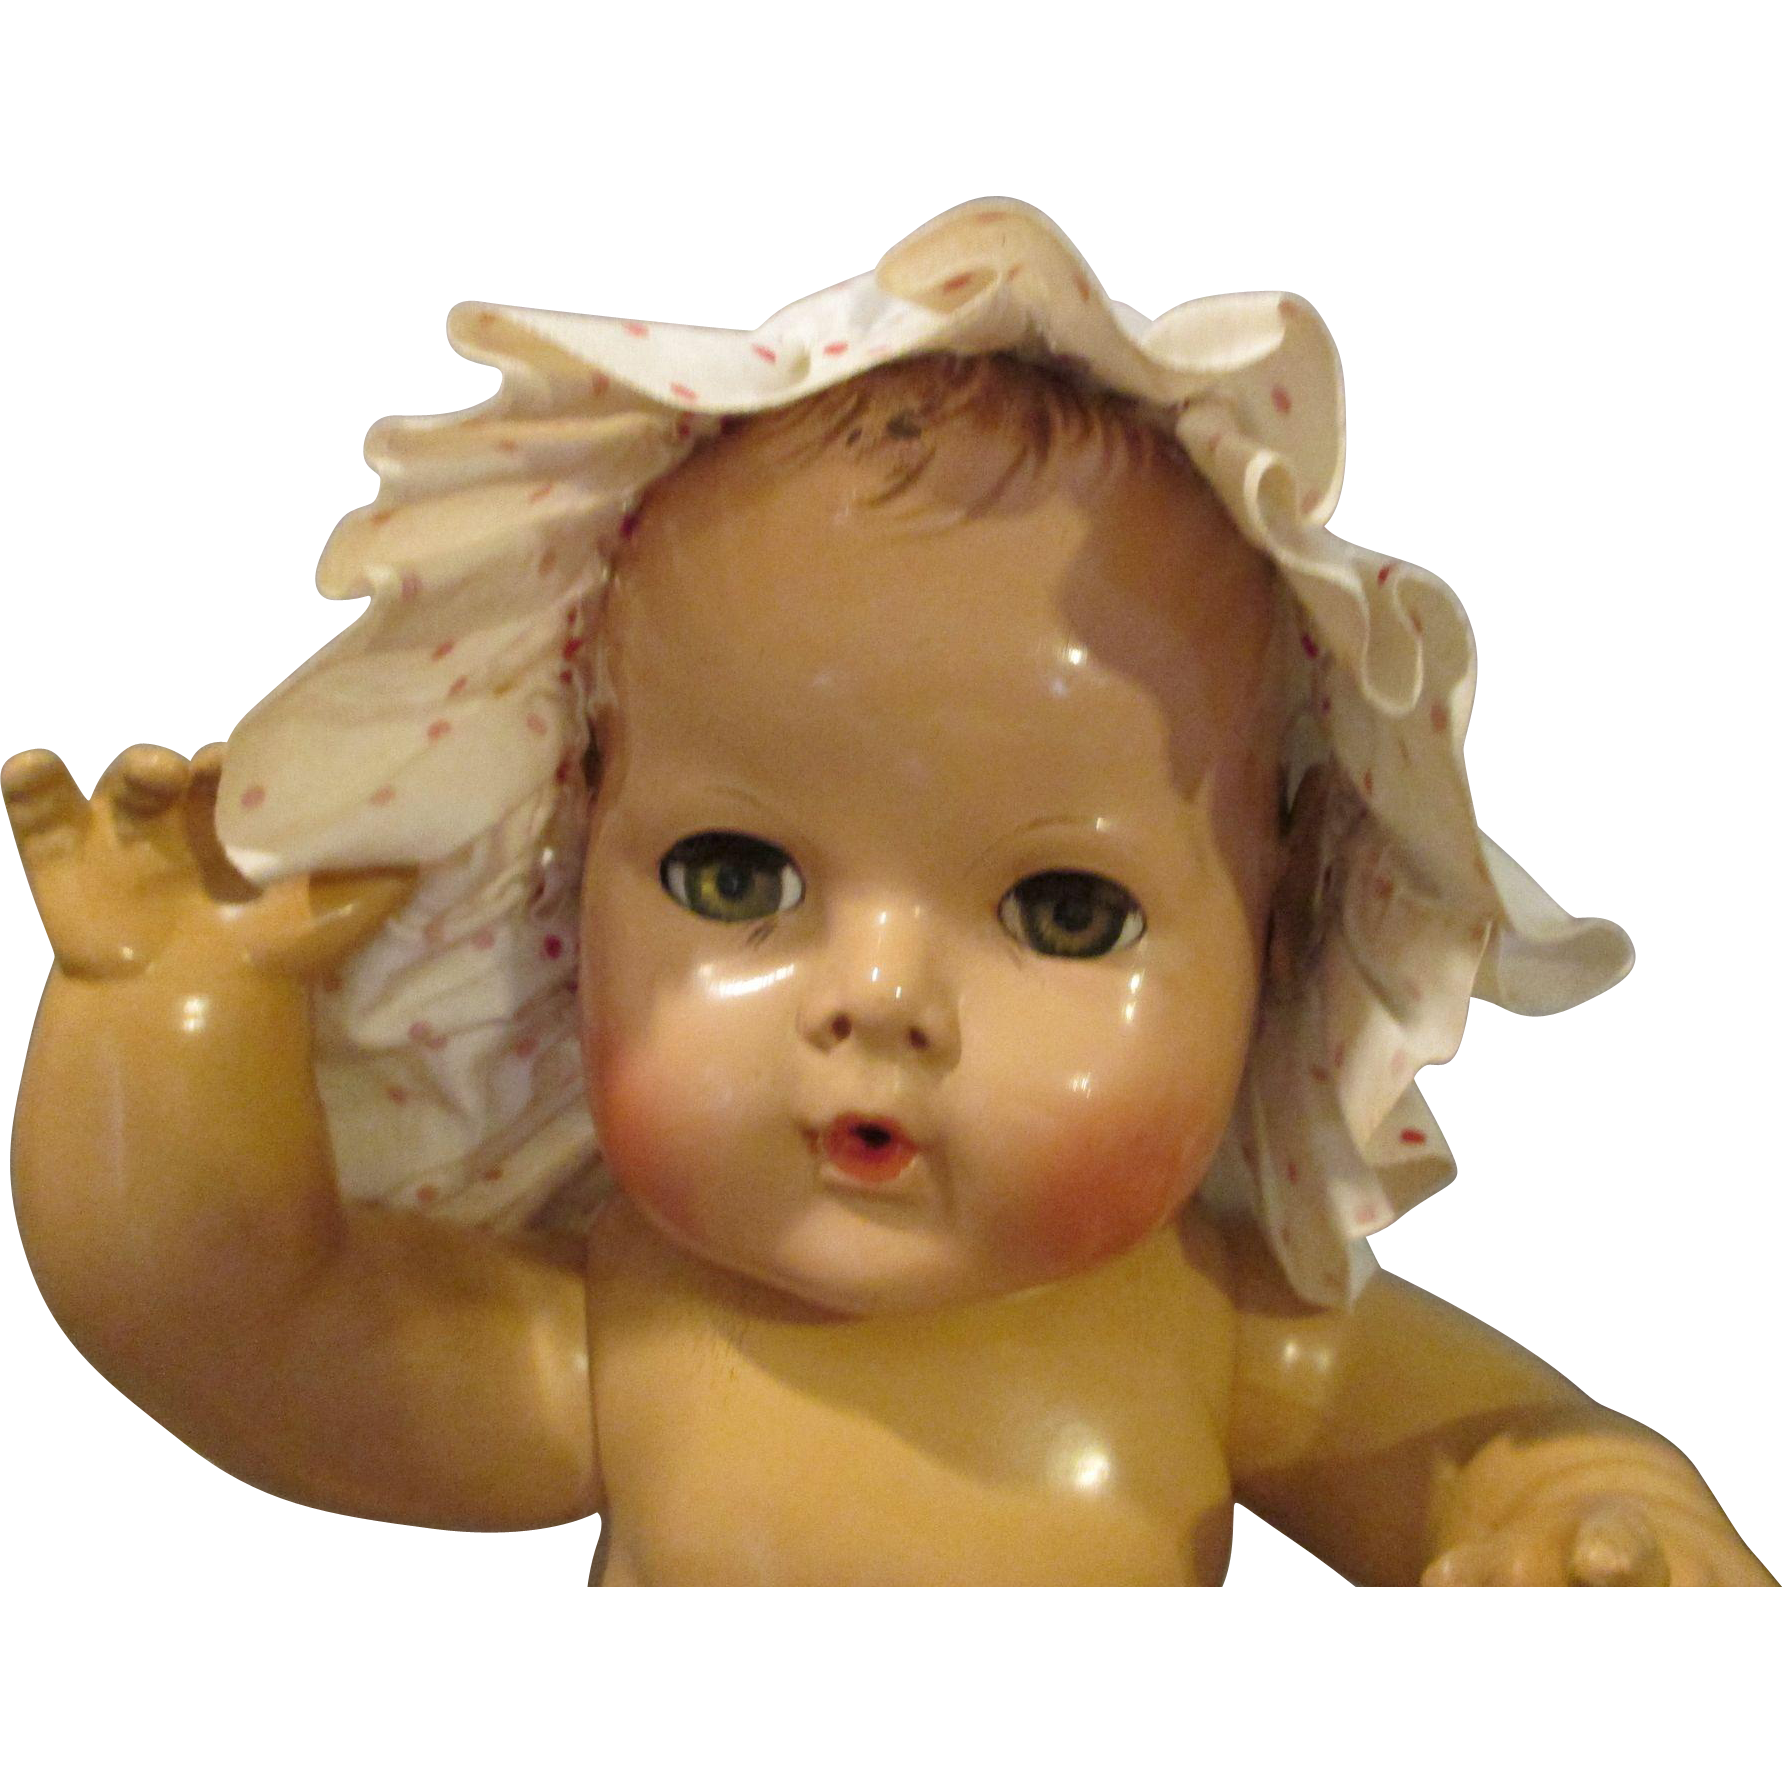 Vintage Sun Bonnet for Your Vintage Baby Doll